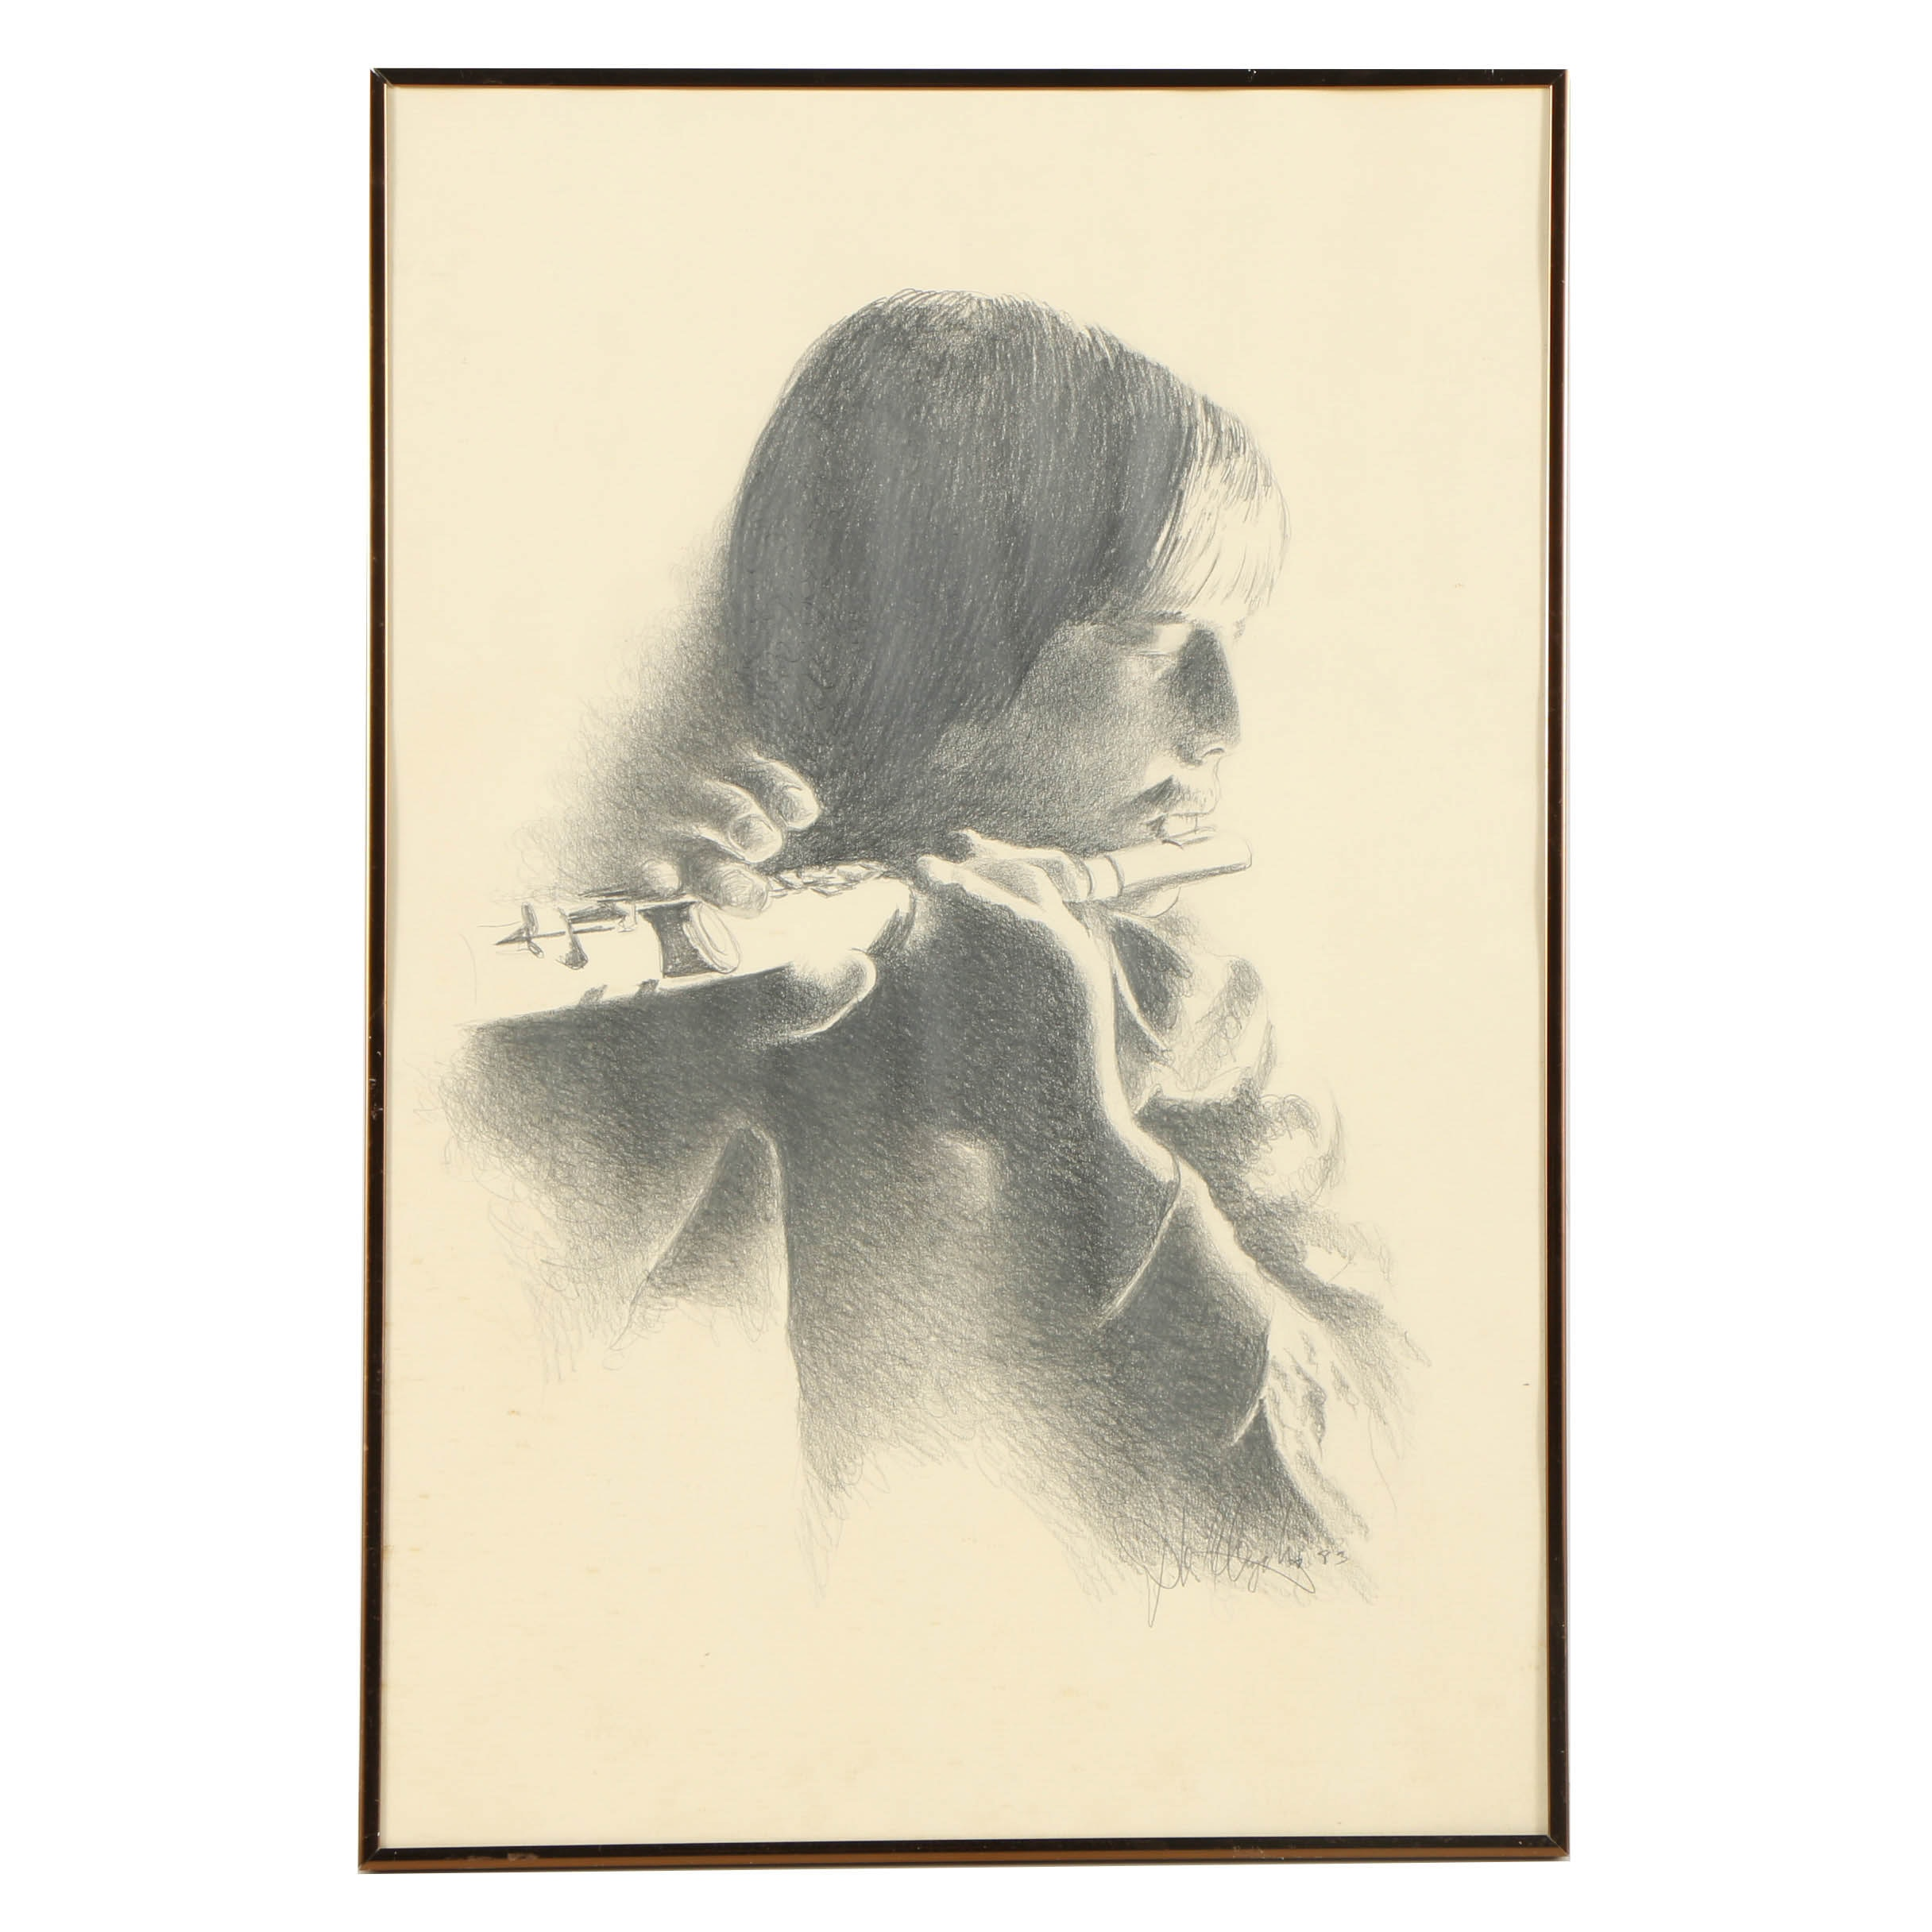 Late 20th-Century Graphite Drawing